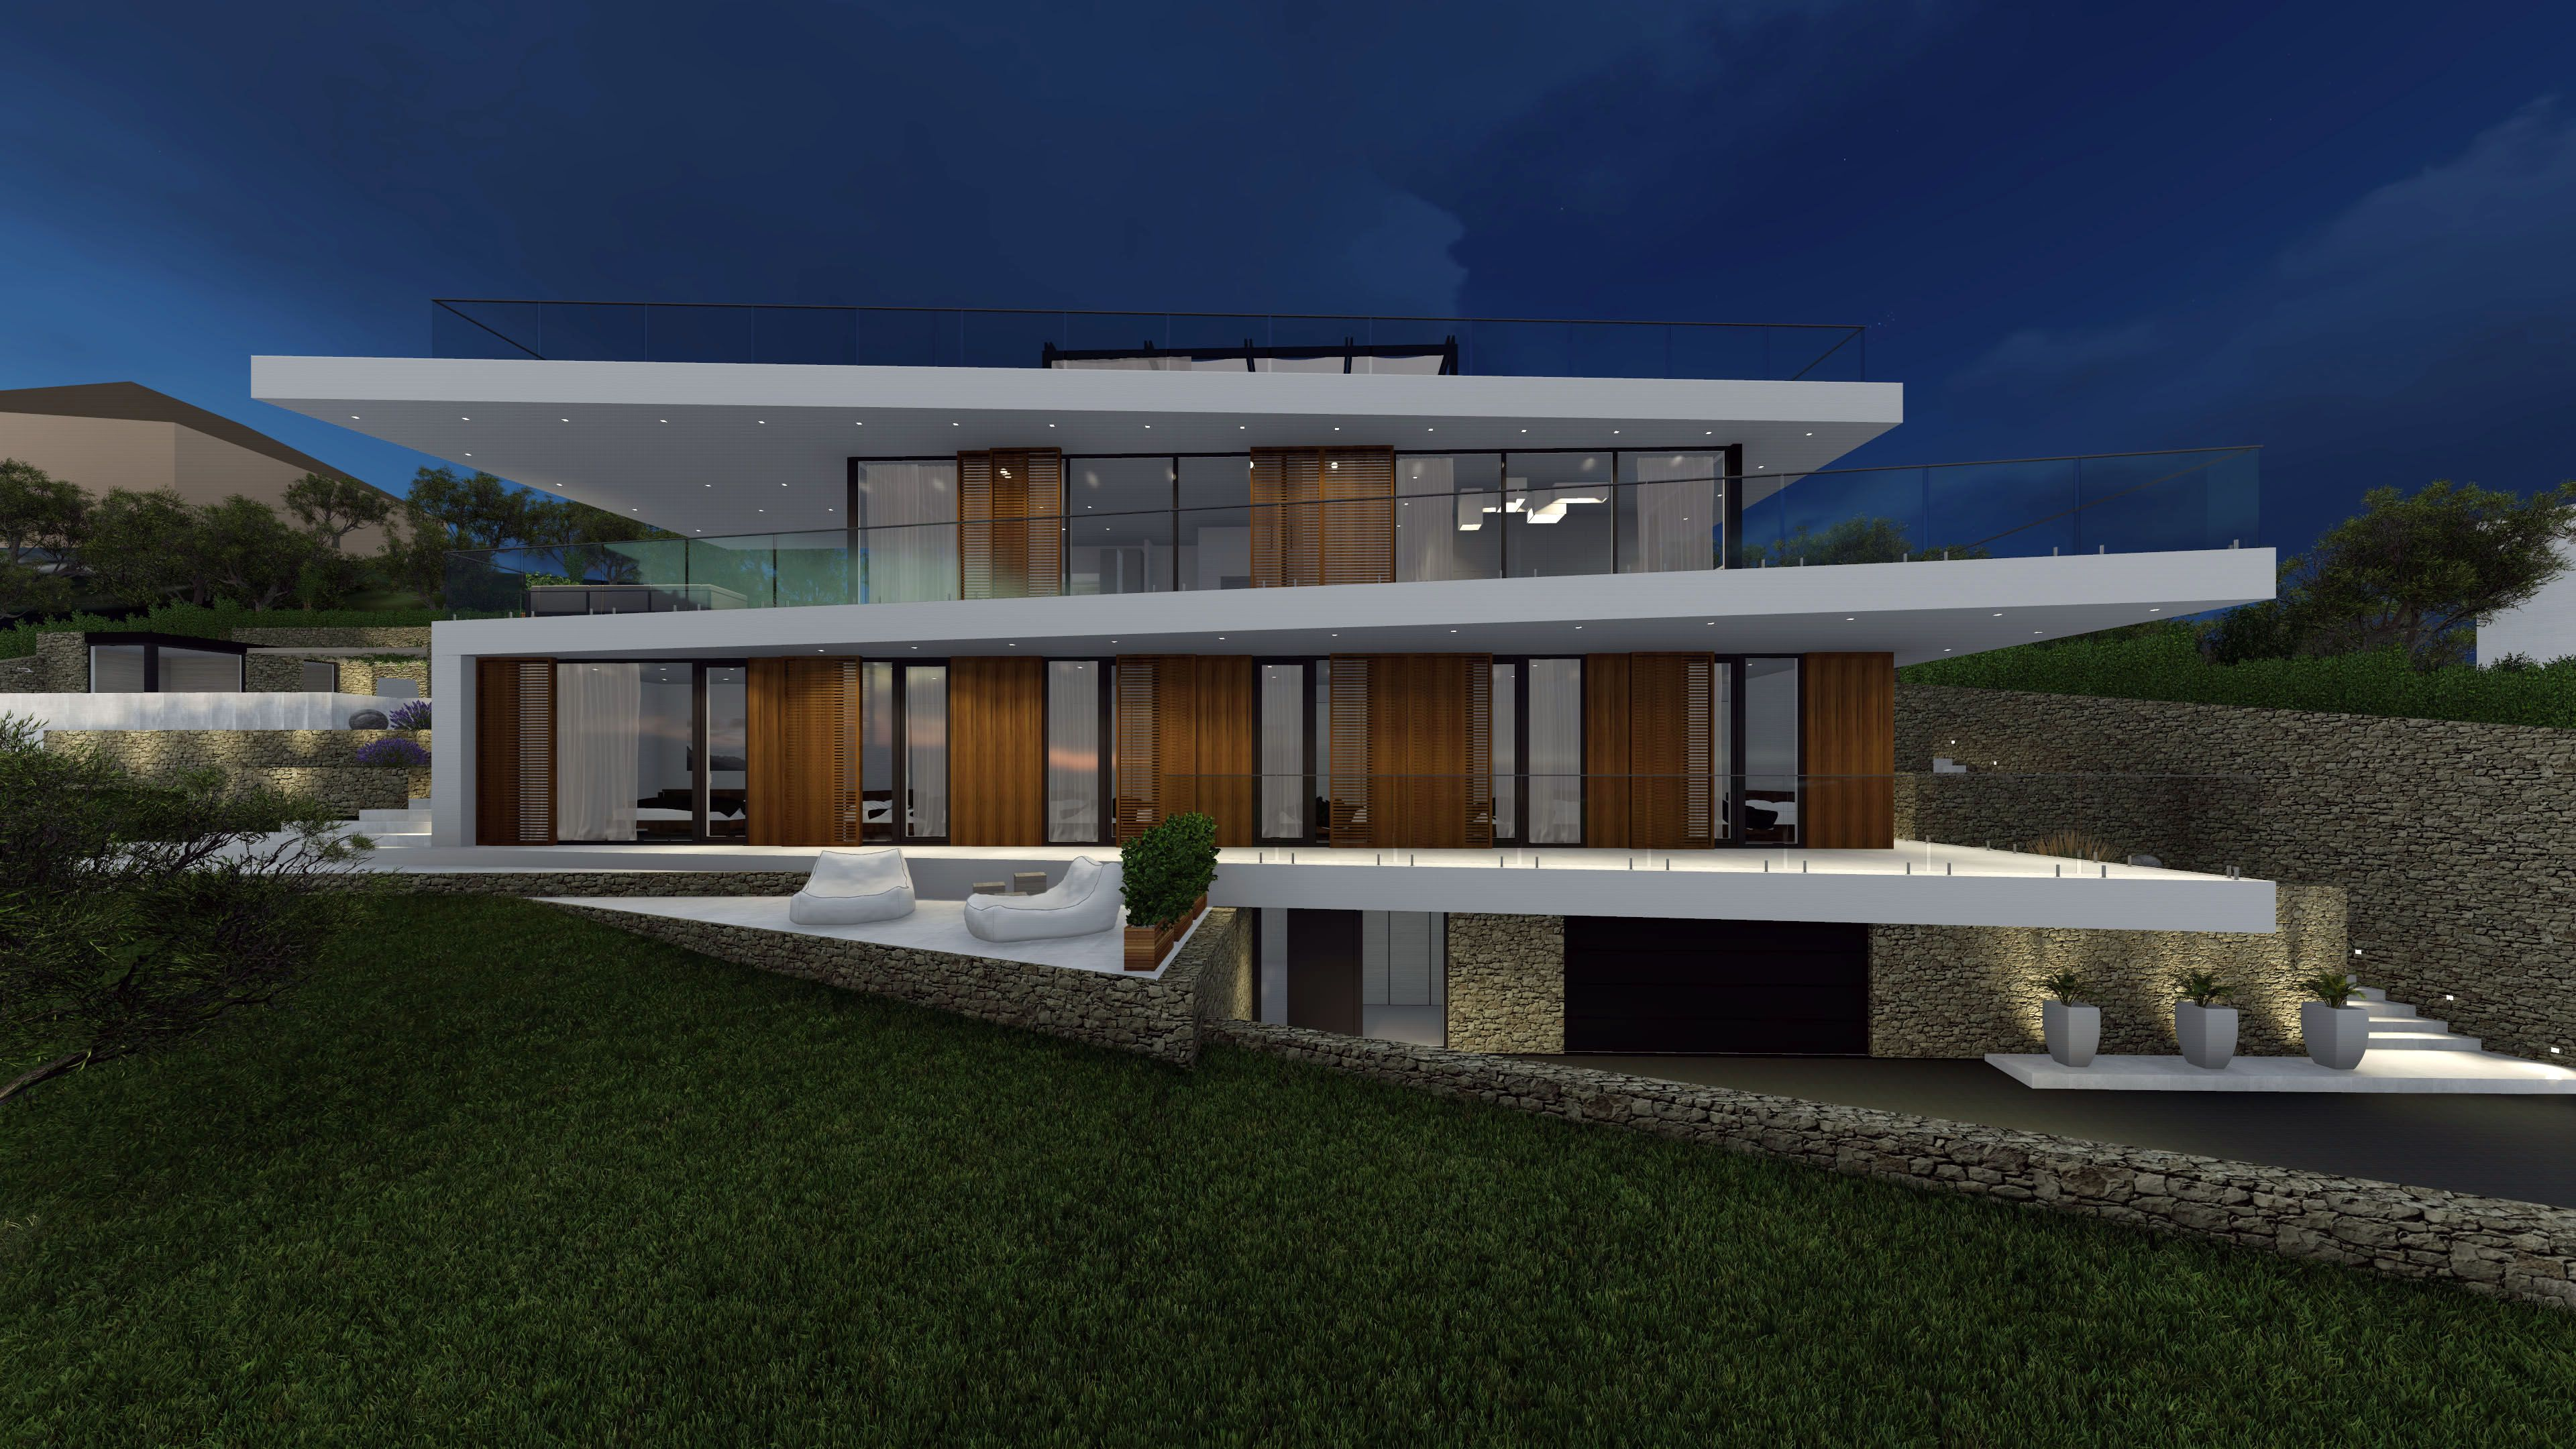 Modern villa in french riviera by ng architects www ngarchitects eu